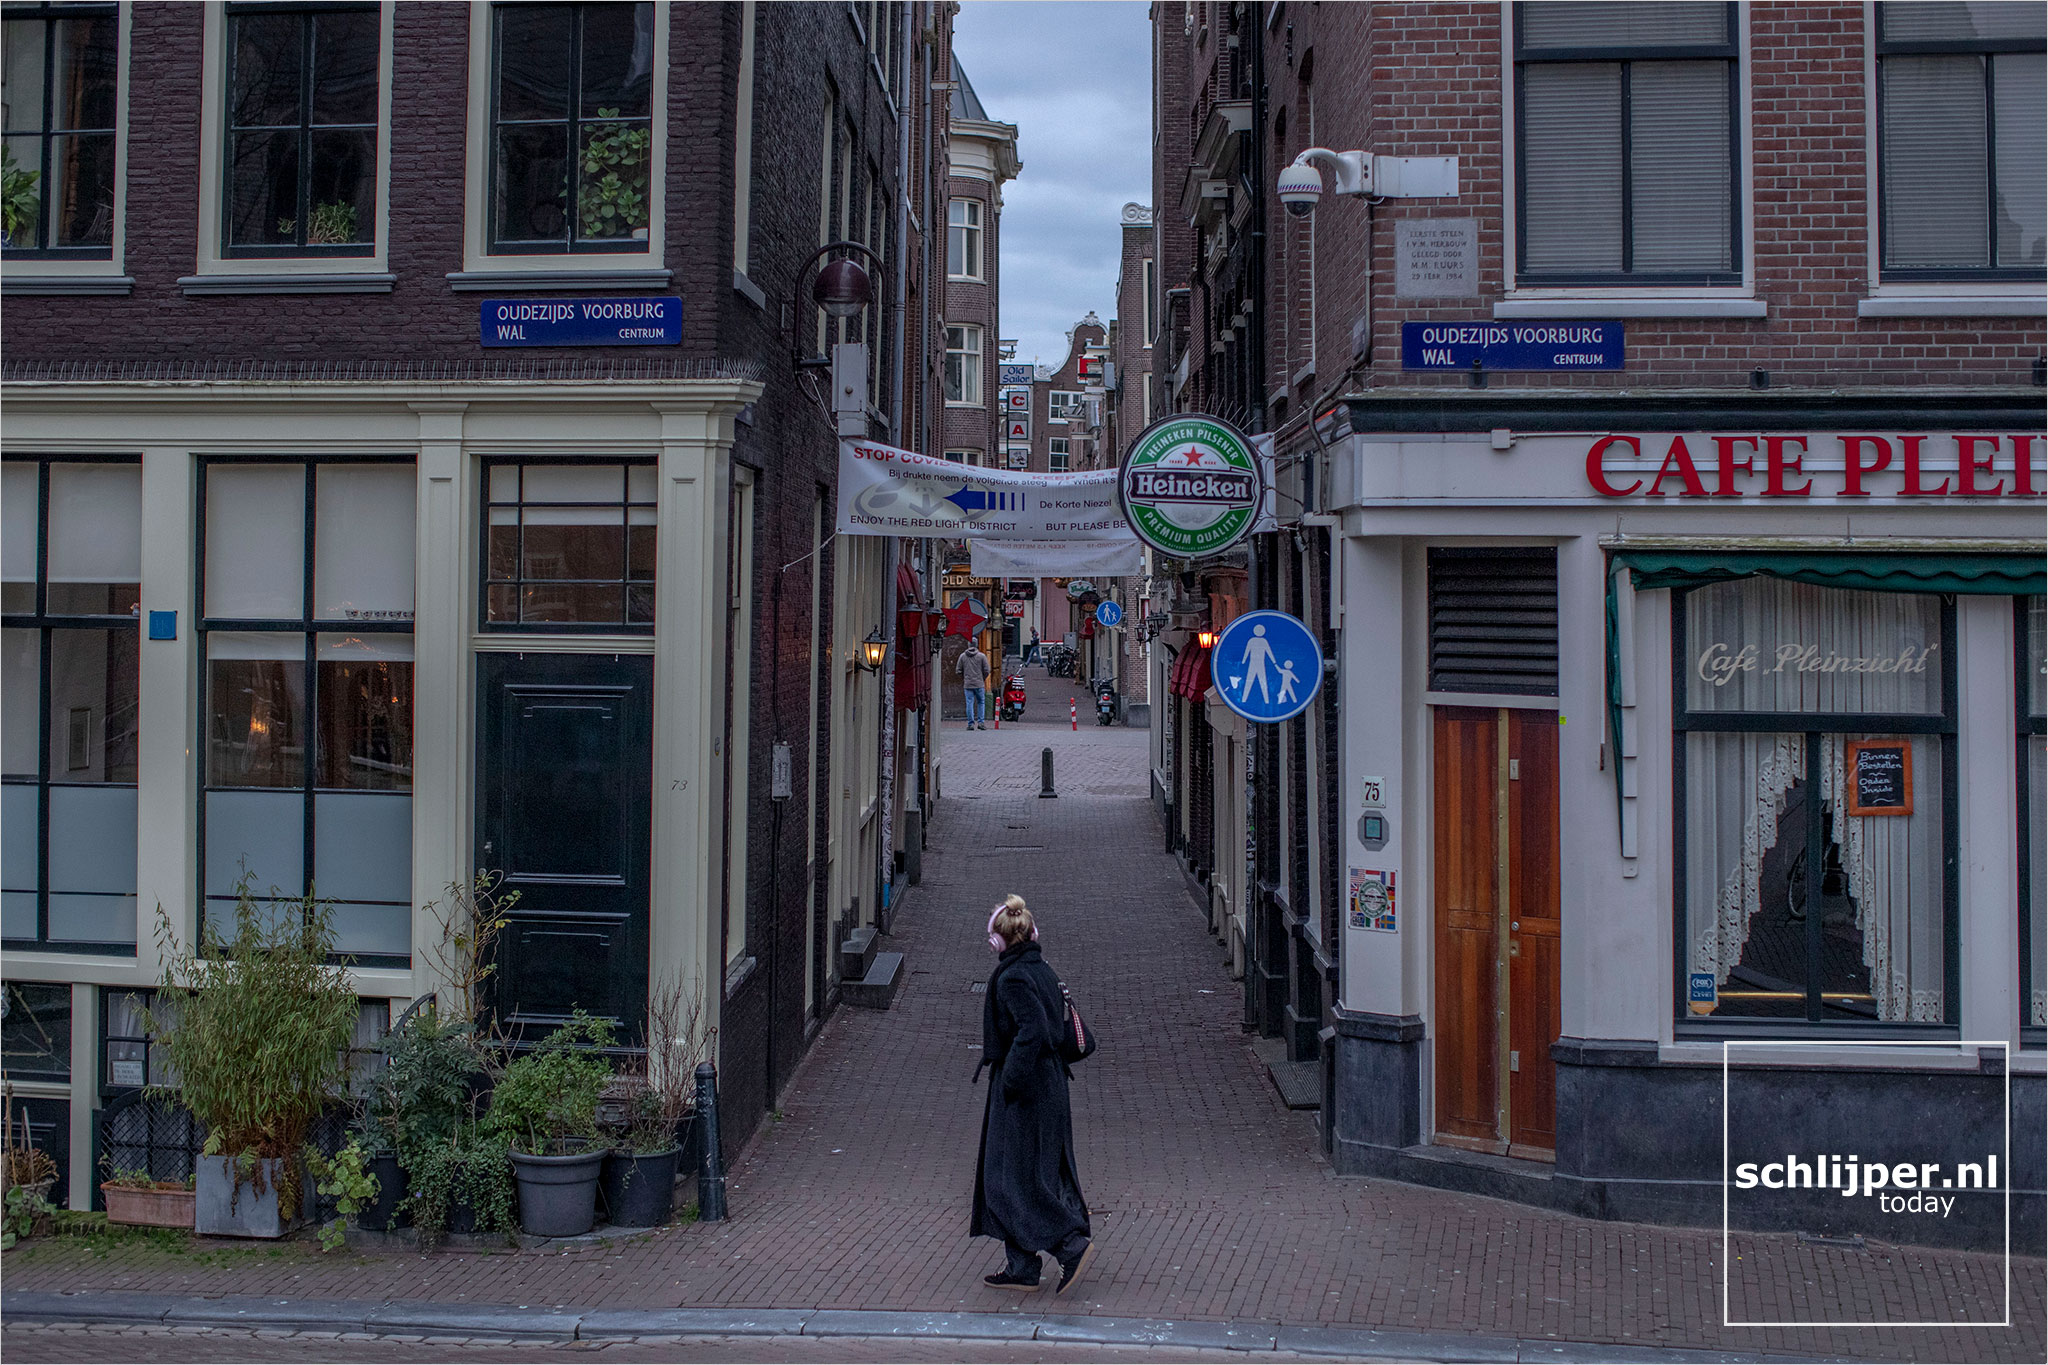 The Netherlands, Amsterdam, 6 januari 2021